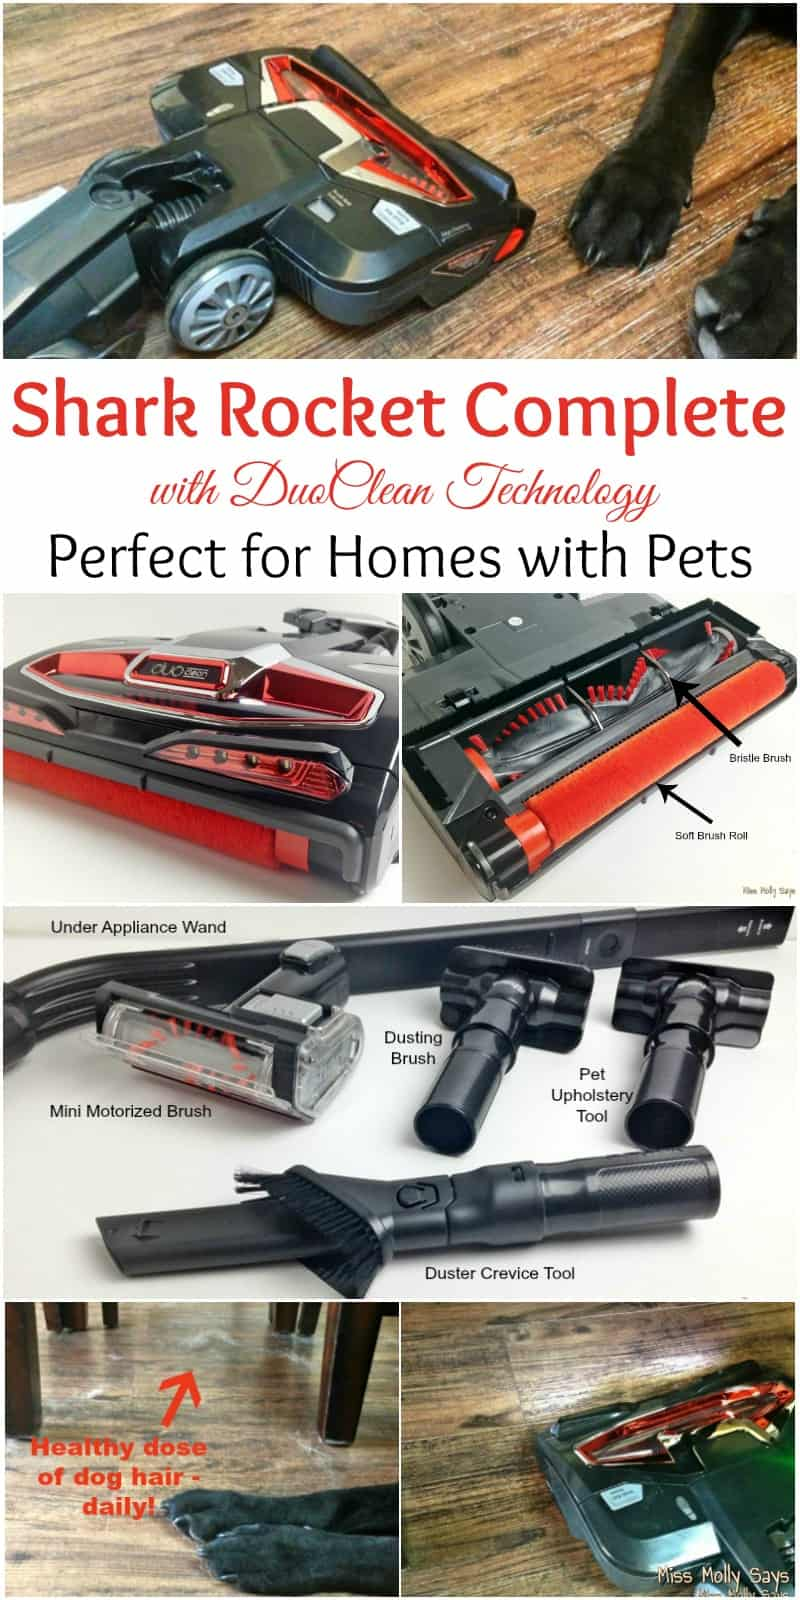 Shark Rocket Complete with DuoClean Technology is Perfect for Homes with Pets